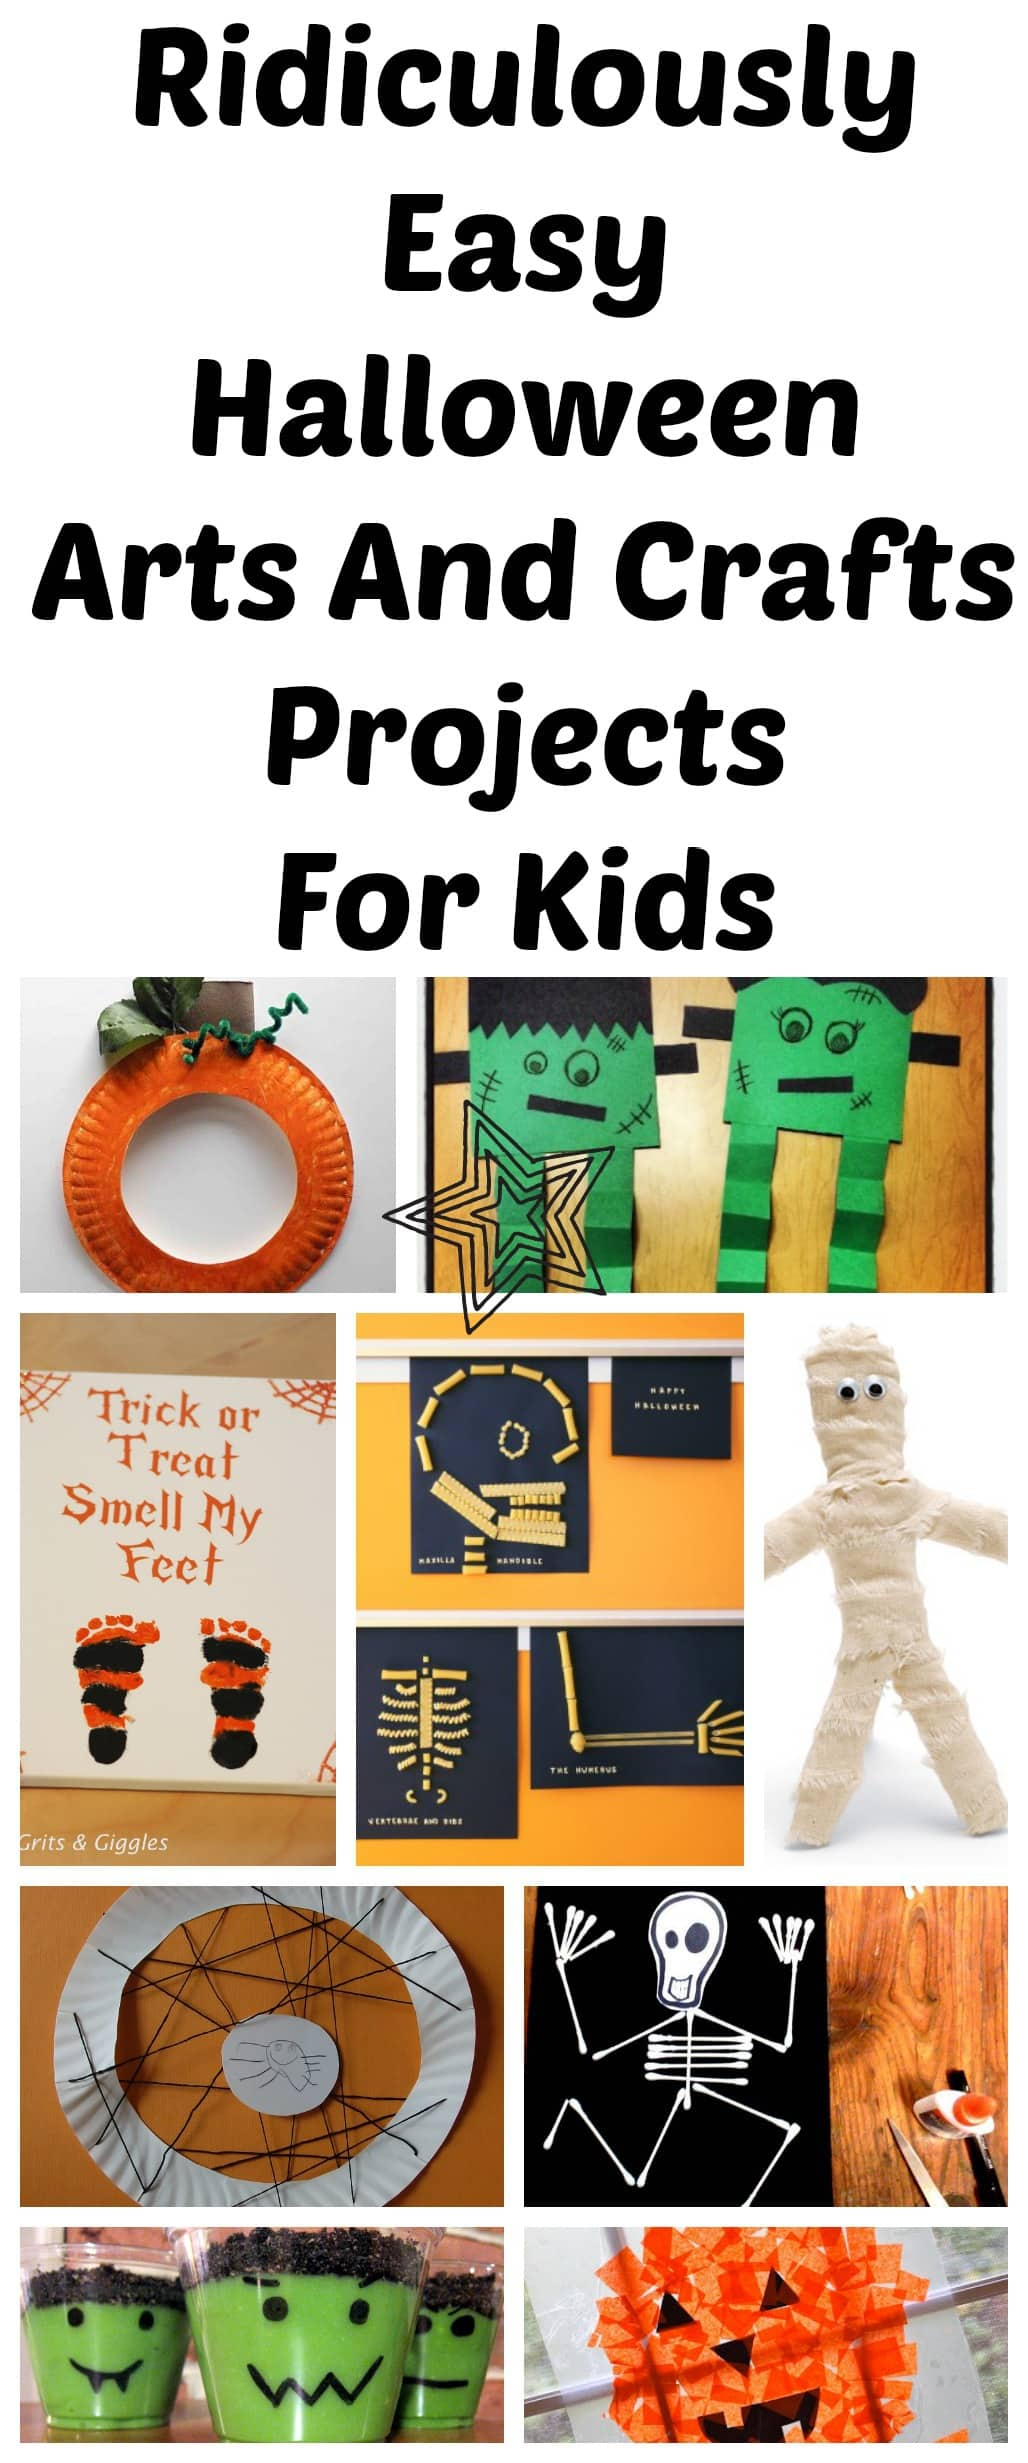 10 ridiculously easy halloween arts and crafts projects to do with